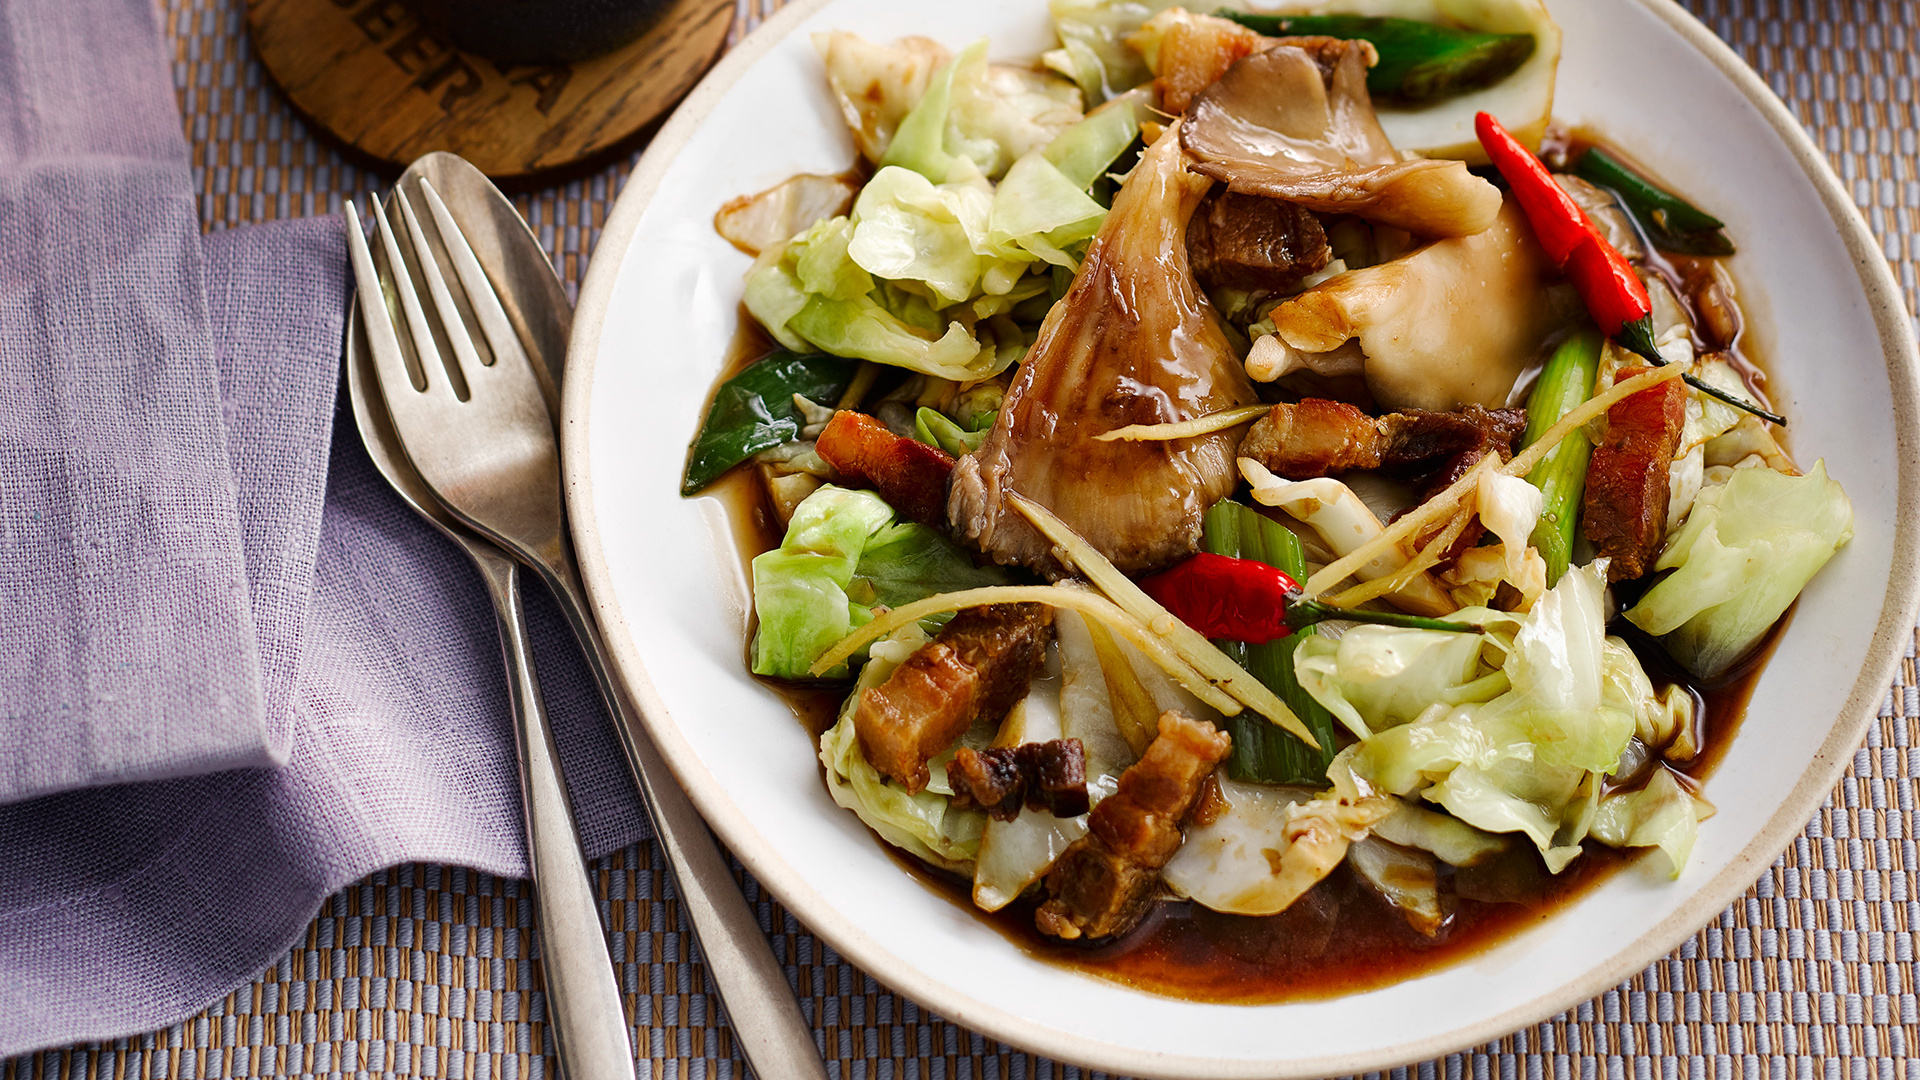 Andy Oliver's stir-fried hispi cabbage with oyster mushrooms and pork